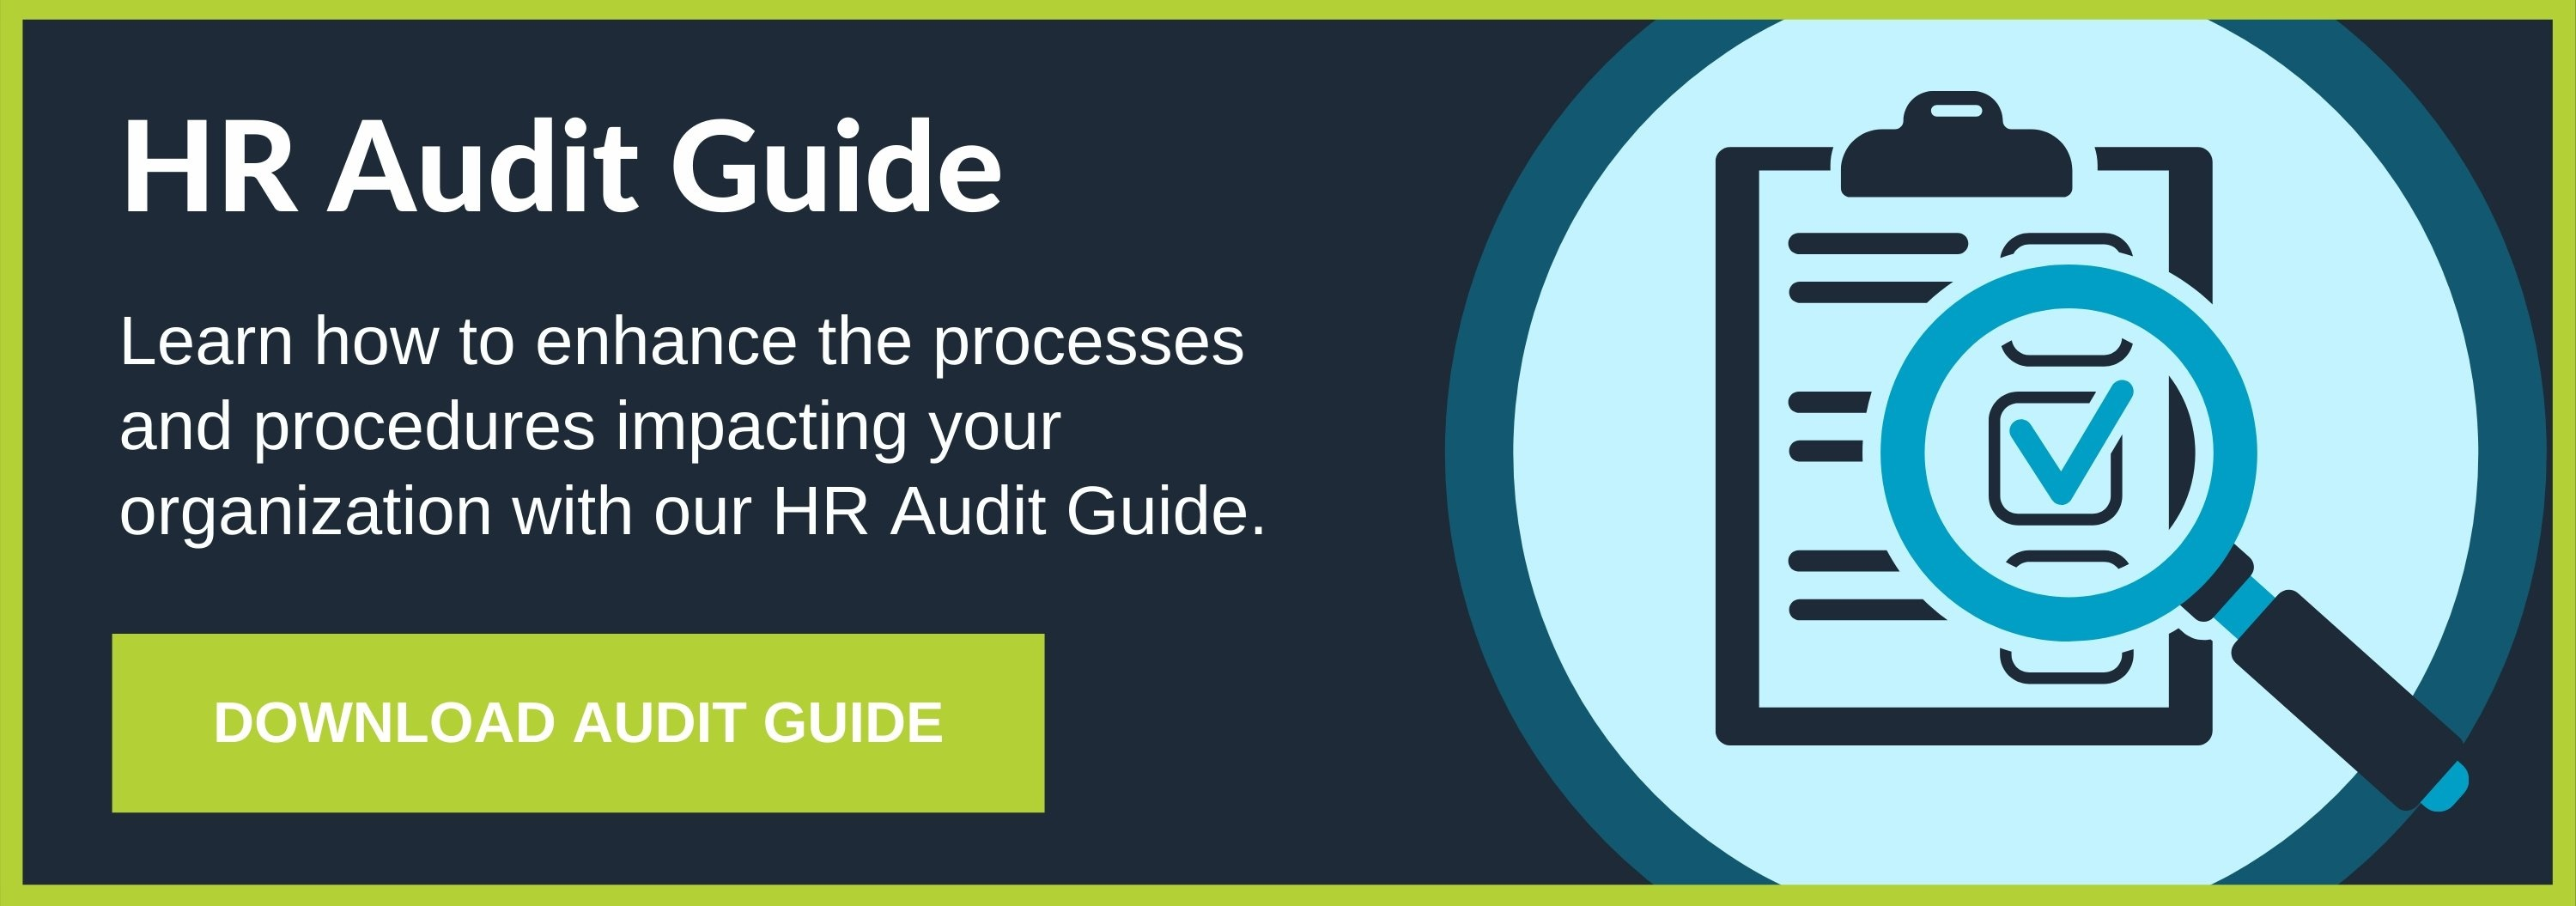 HR Audit Guide